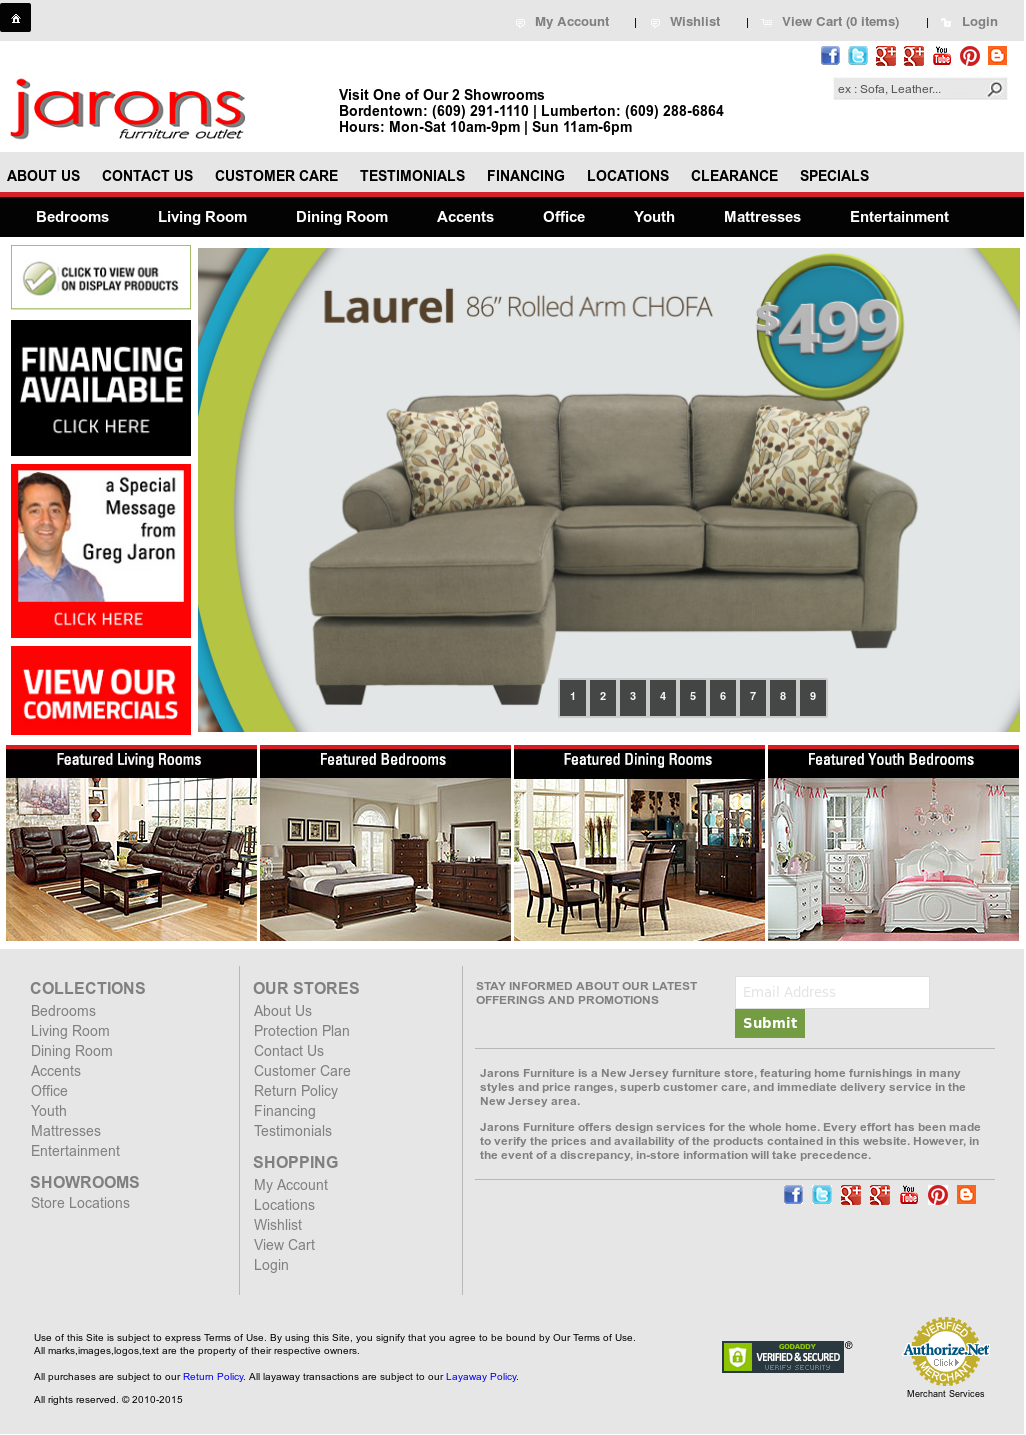 Jaron S Furniture Outlet Competitors Revenue And Employees Owler